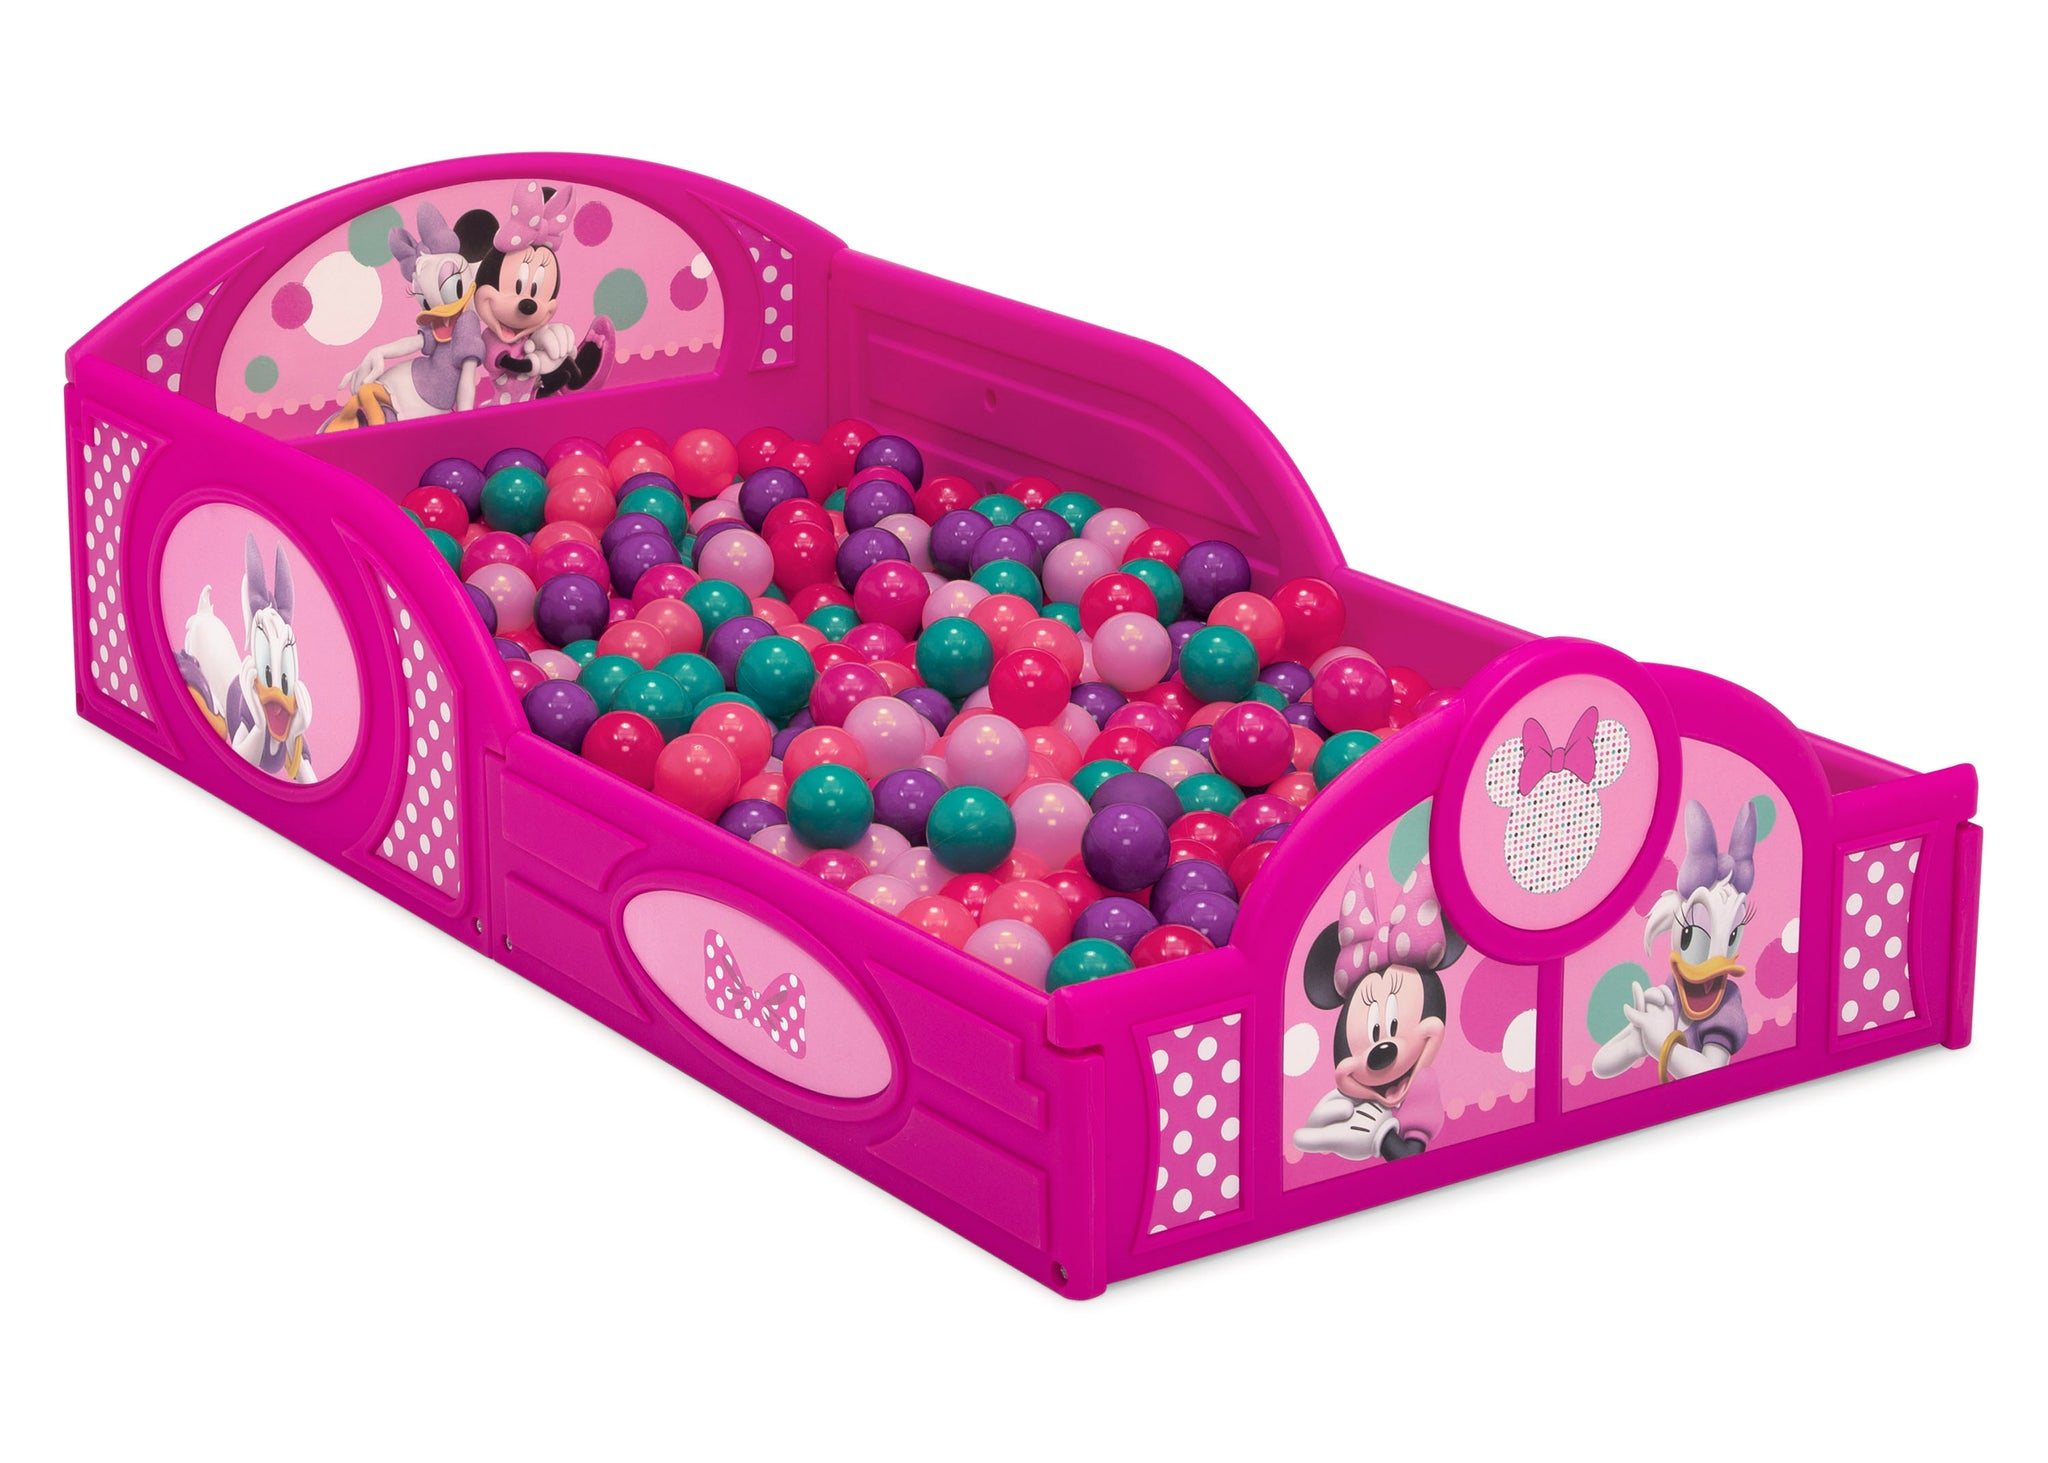 Delta Children Minnie Mouse (1063) Plastic Sleep and Play Toddler Bed, Right Silo Ball Pit View